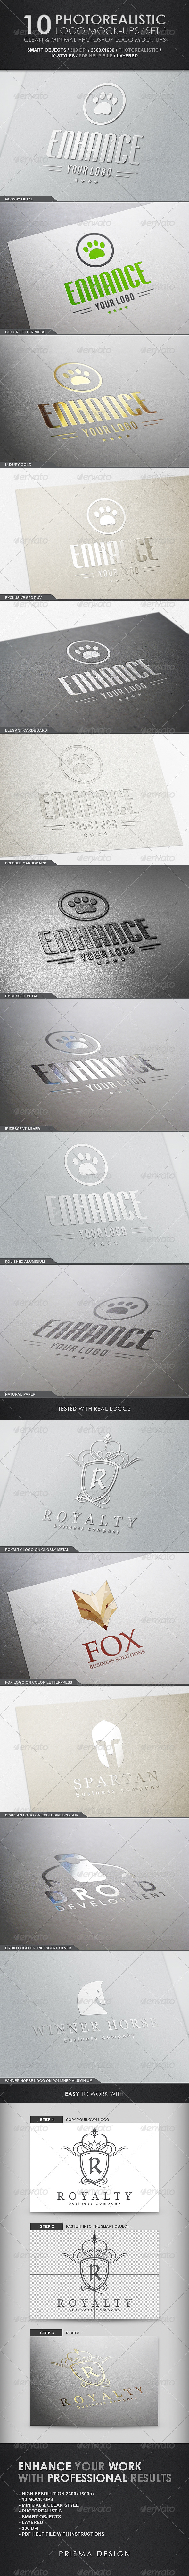 10 Photorealistic Logo Mock-Ups / Set 1 - Logo Product Mock-Ups